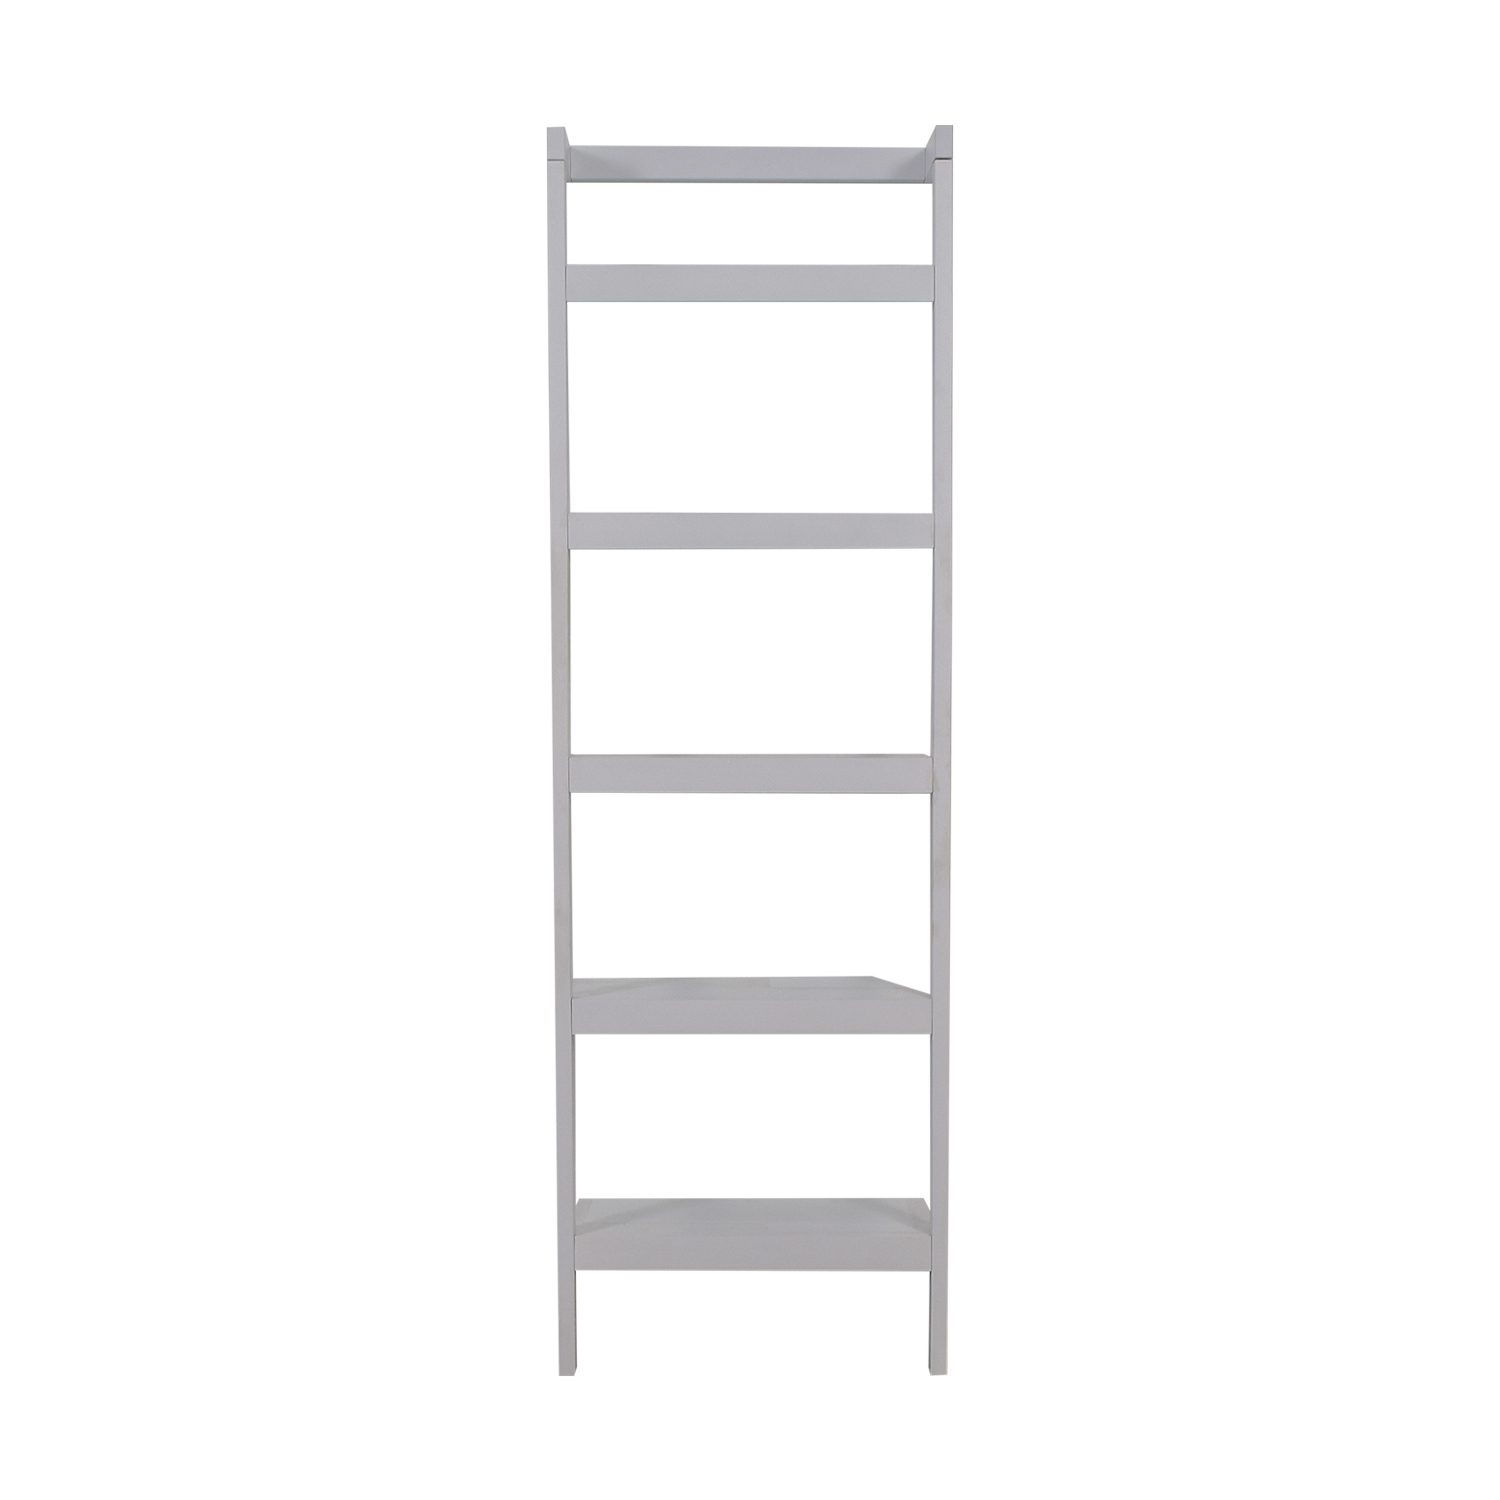 buy Crate & Barrel Sawyer White Bookcase Crate & Barrel Bookcases & Shelving